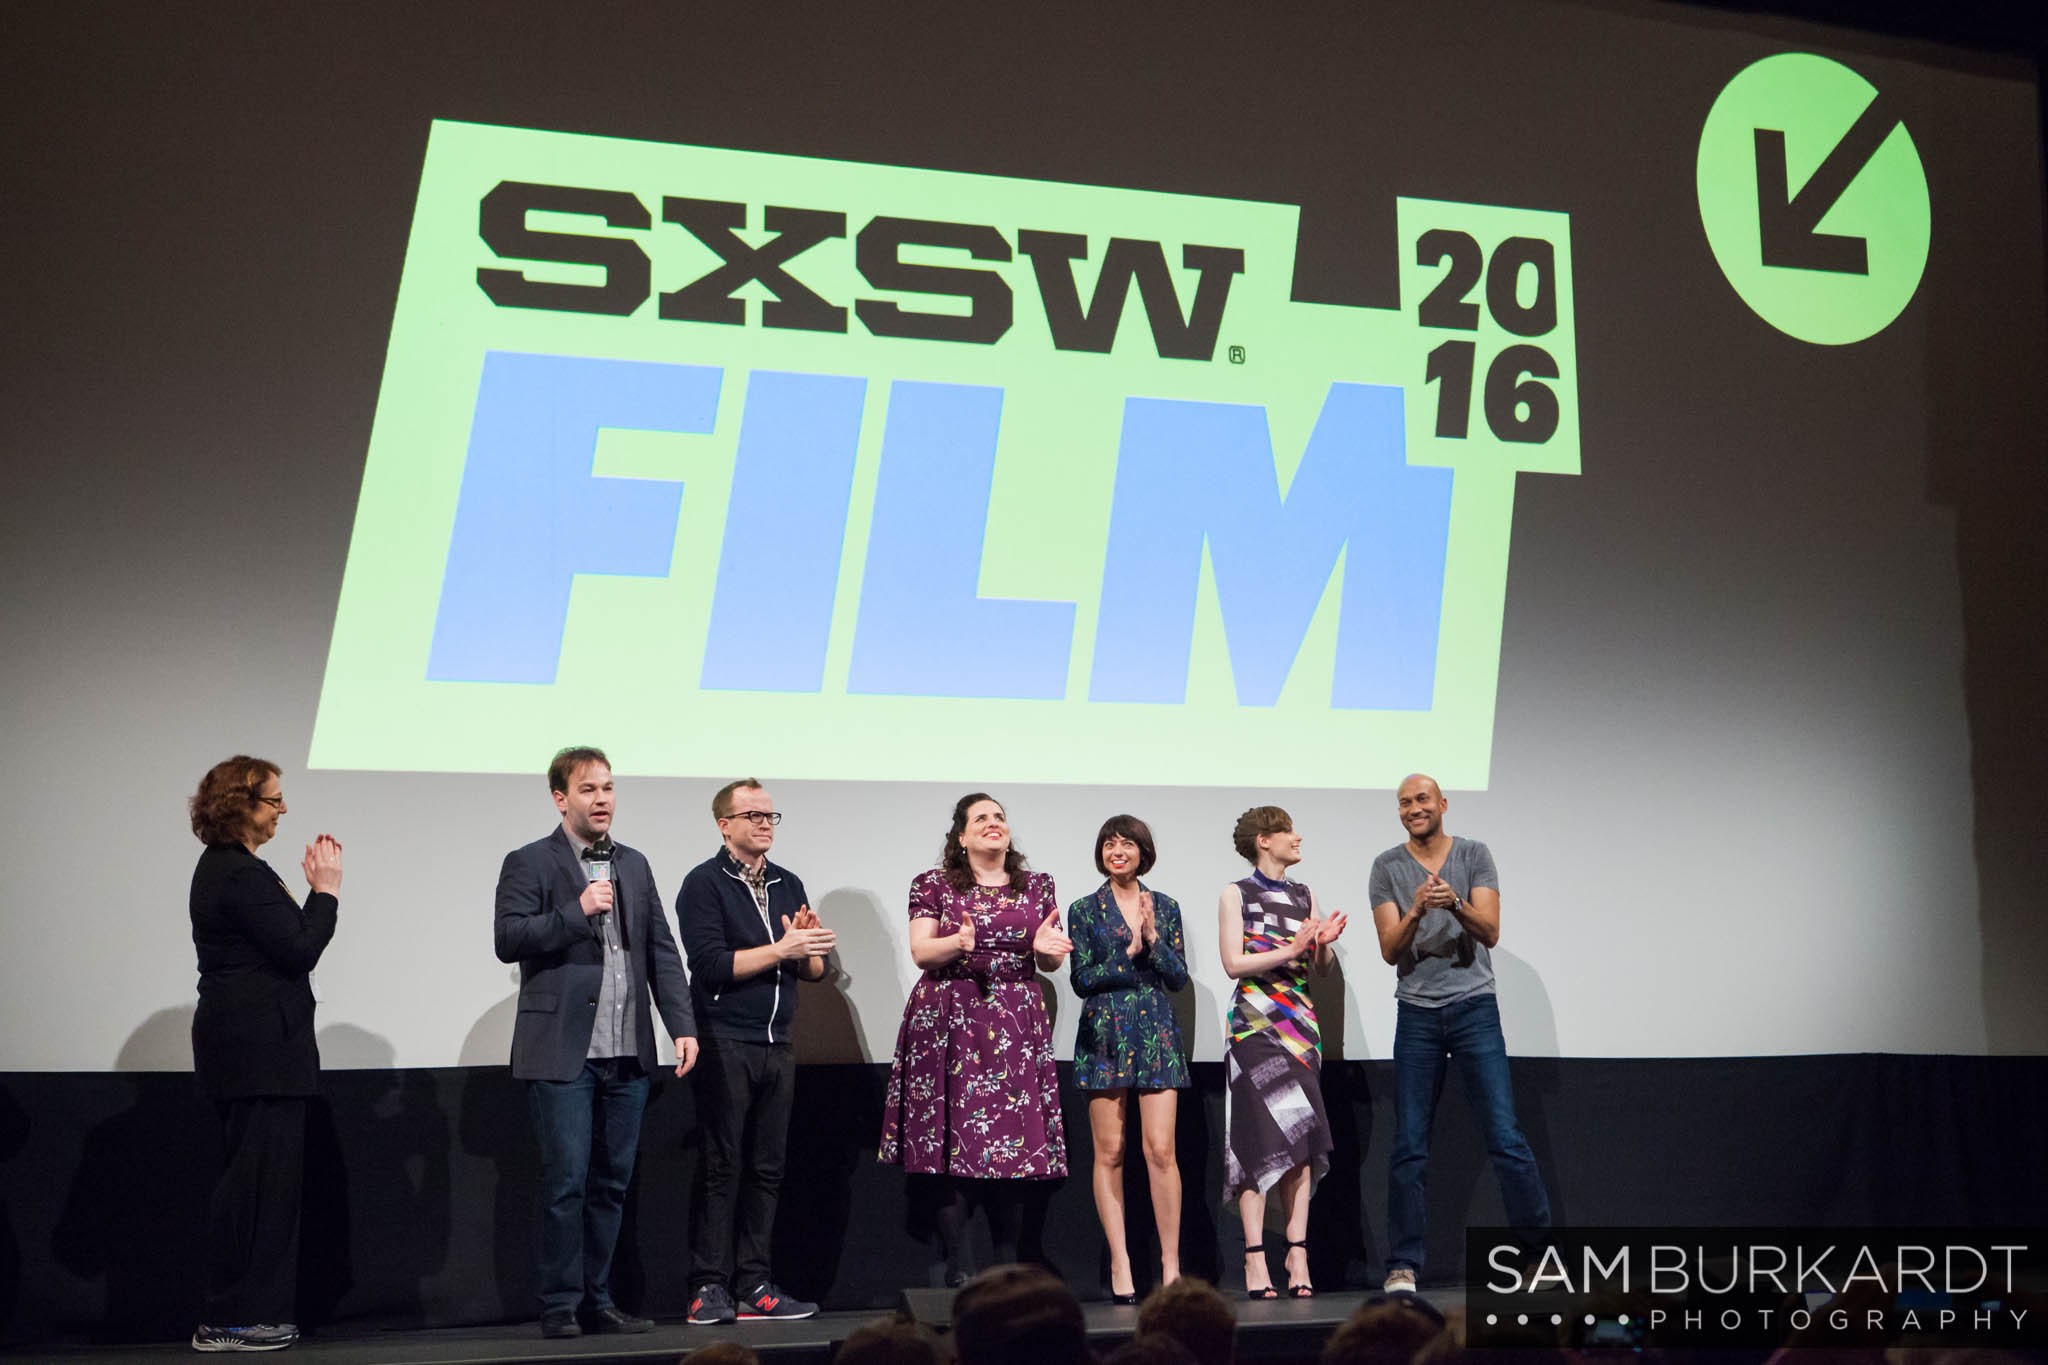 Mike Birbiglia, Gillian Jacobs, Kate Micucci, Tami Sagher, Keegan-Michael Key and Chris Gethard at 'Don't Think Twice' movie premiere at SXSW 2016